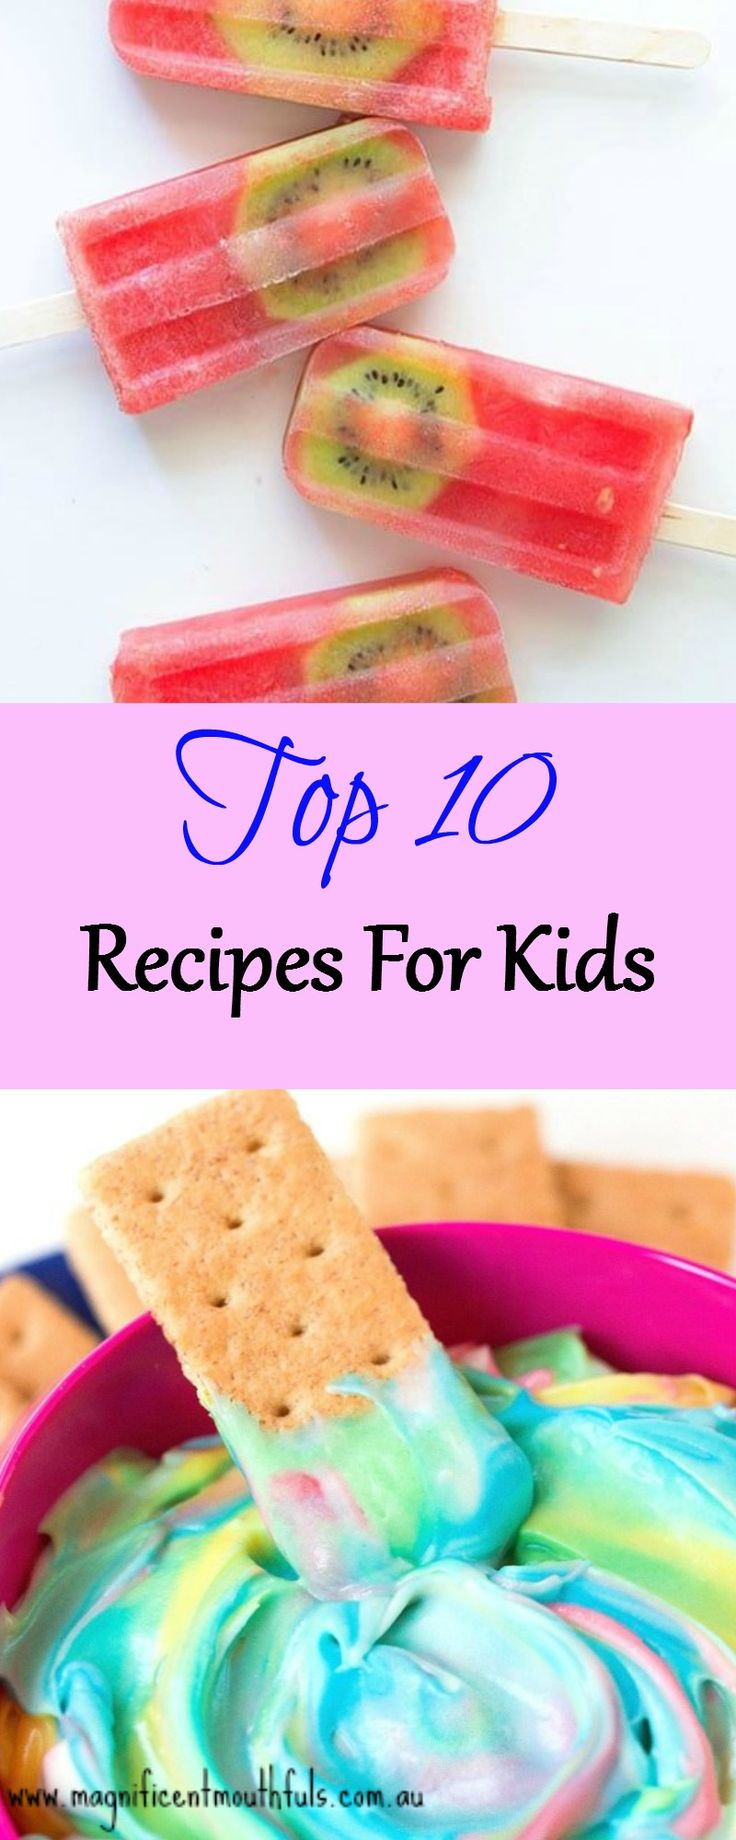 Top 10 Recipes For Kids | With school holidays upon us here in Australia, it's always handy to have a few activities to do with the kids. And it's even handier if you can kill two birds with one stone, and have an activity, and a snack at the same time! These recipes for kids are great ideas. | http://magnificentmouthfuls.com.au/2017/06/28/recipes-for-kids/